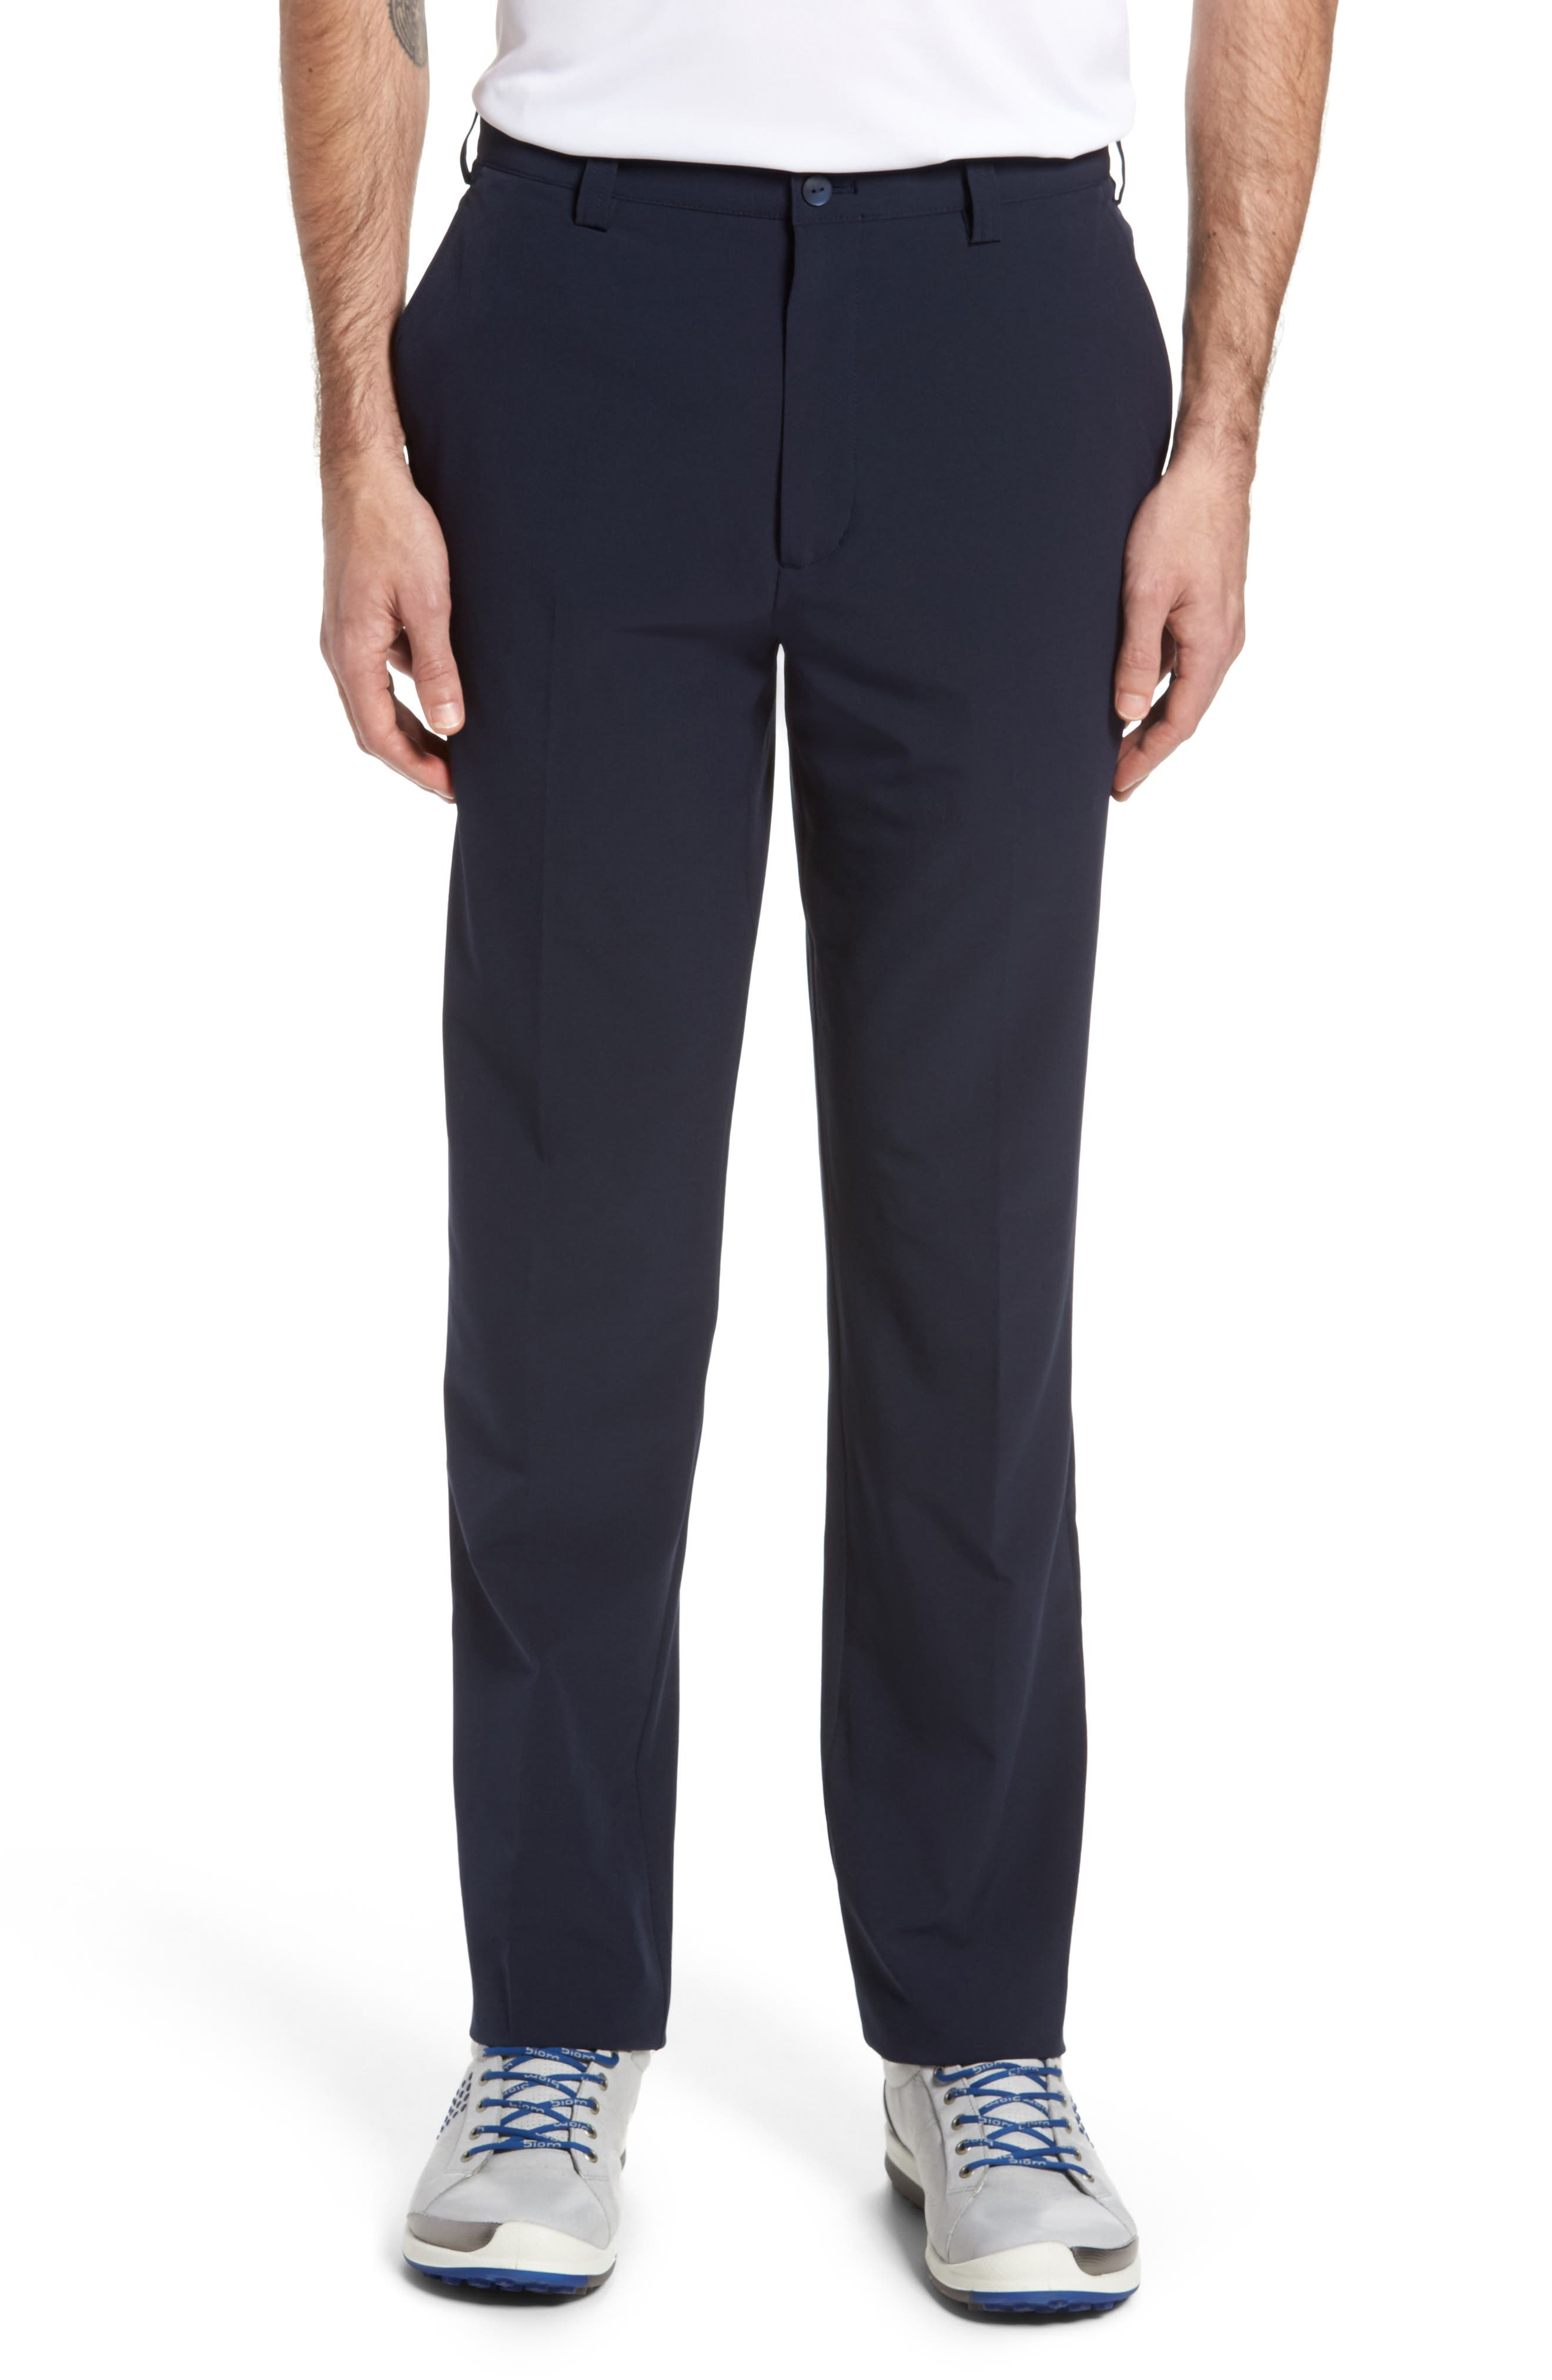 DryTec Chinos,                         Main,                         color, Navy Blue